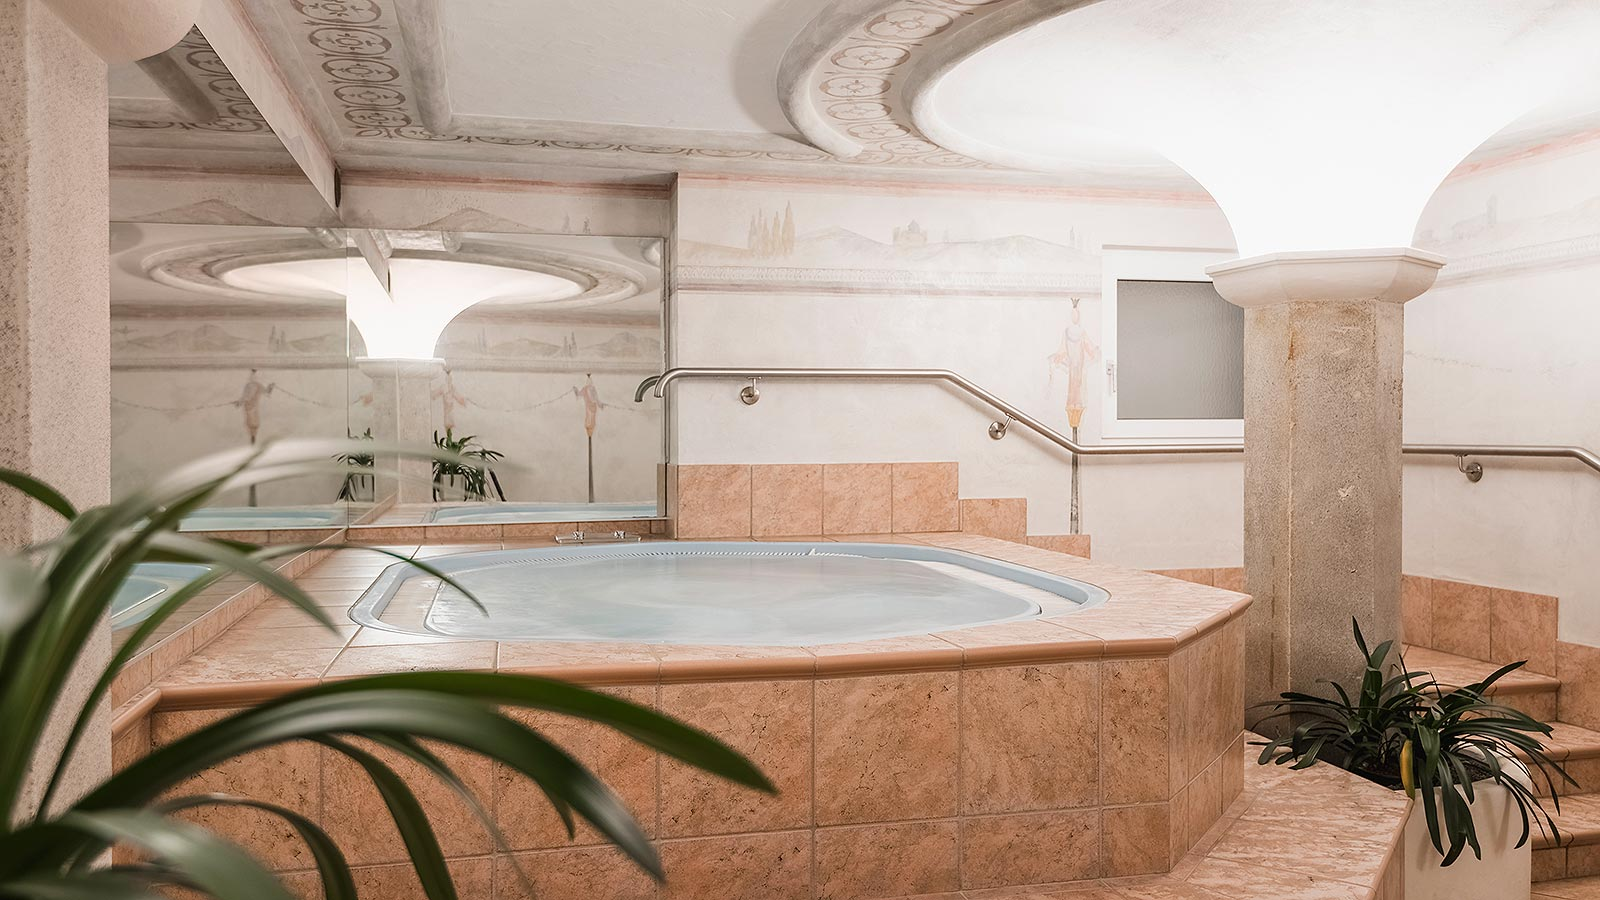 The Jacuzzi at Hotel Laguscei in Arabba